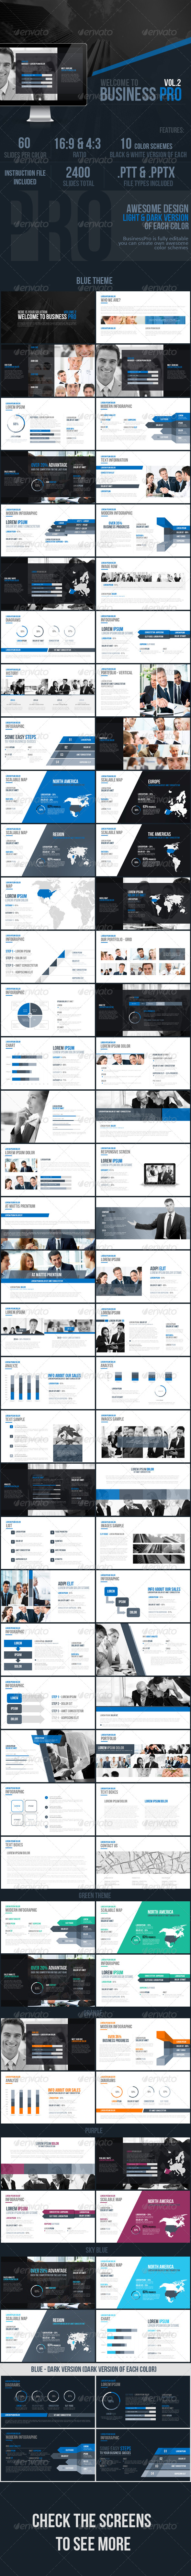 GraphicRiver Business Pro Vol.2 Powerpoint Template 8467817